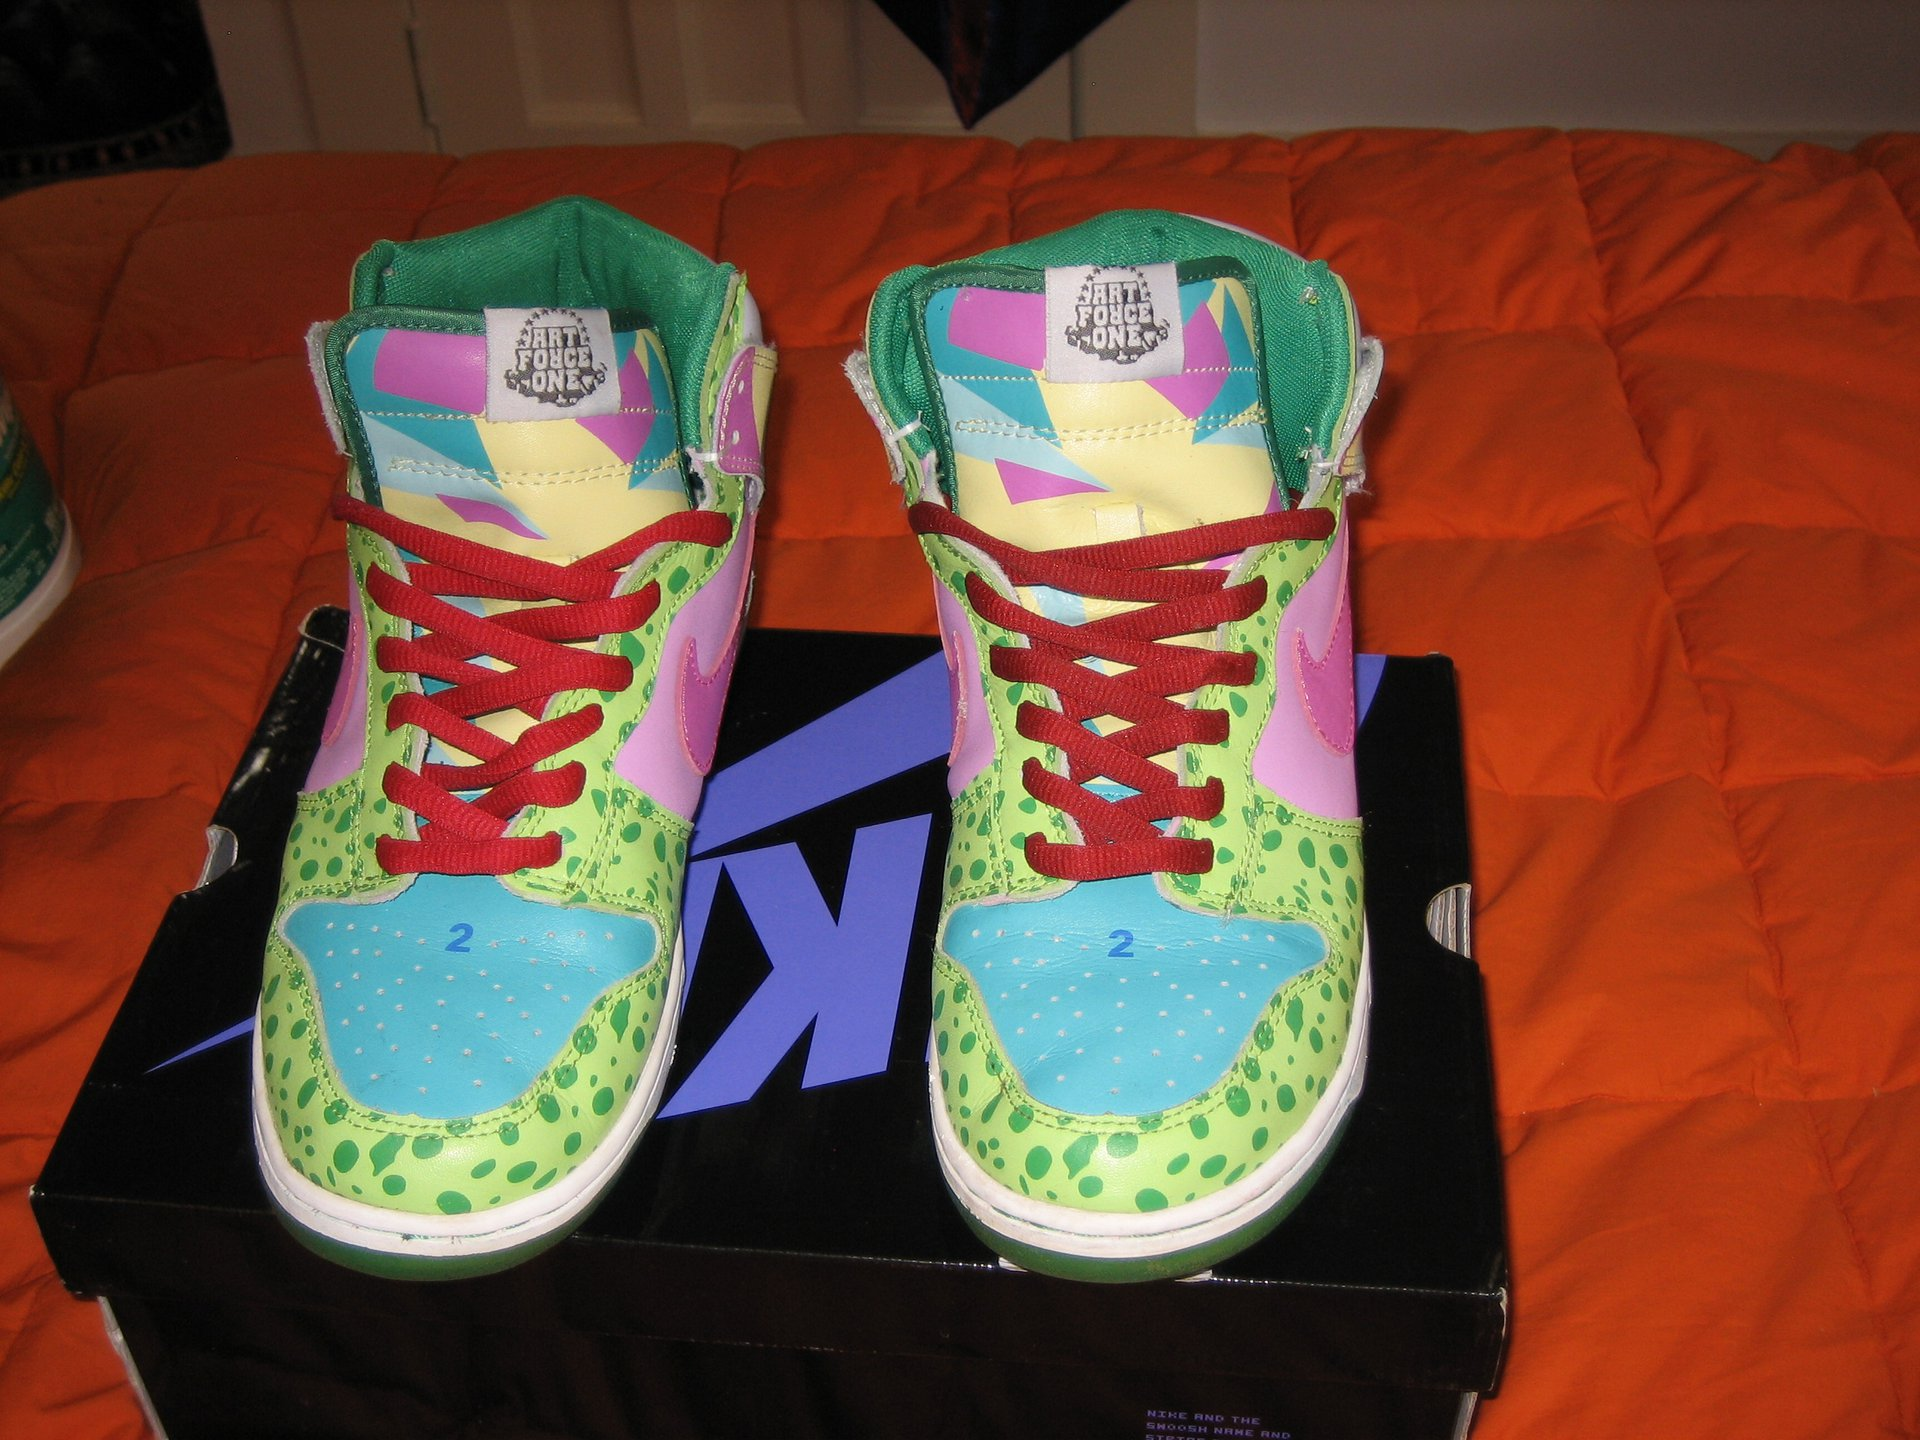 Nike Dunk High Atmos Project Size 11